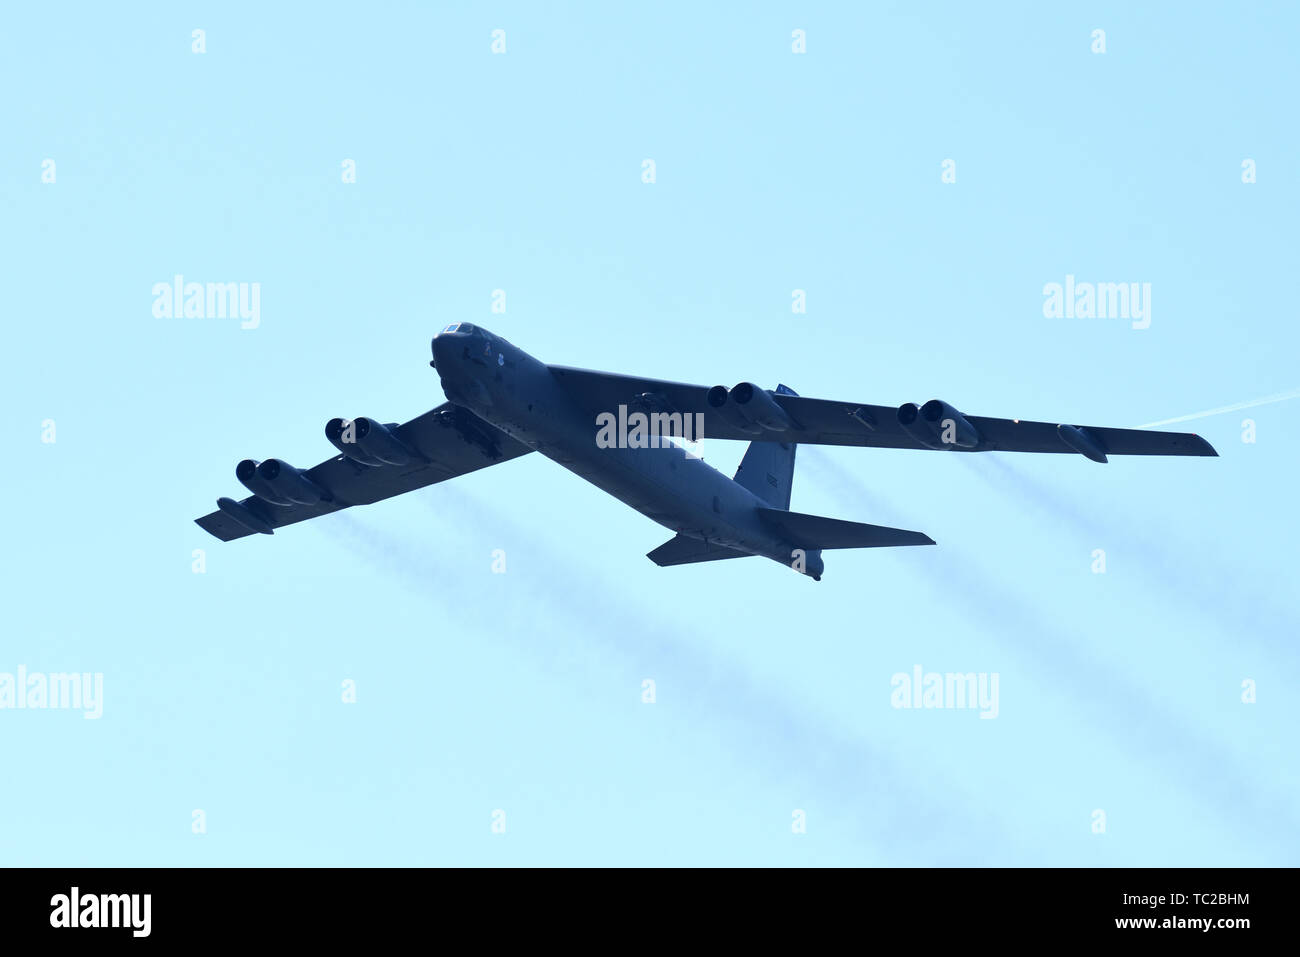 A U.S. Air Force B-52 Stratofortress strategic bomber from the 2nd Bomb Wing during NATO exercise Astral Knight 19 June 4, 2019 over Aviano Air Base, Italy. - Stock Image